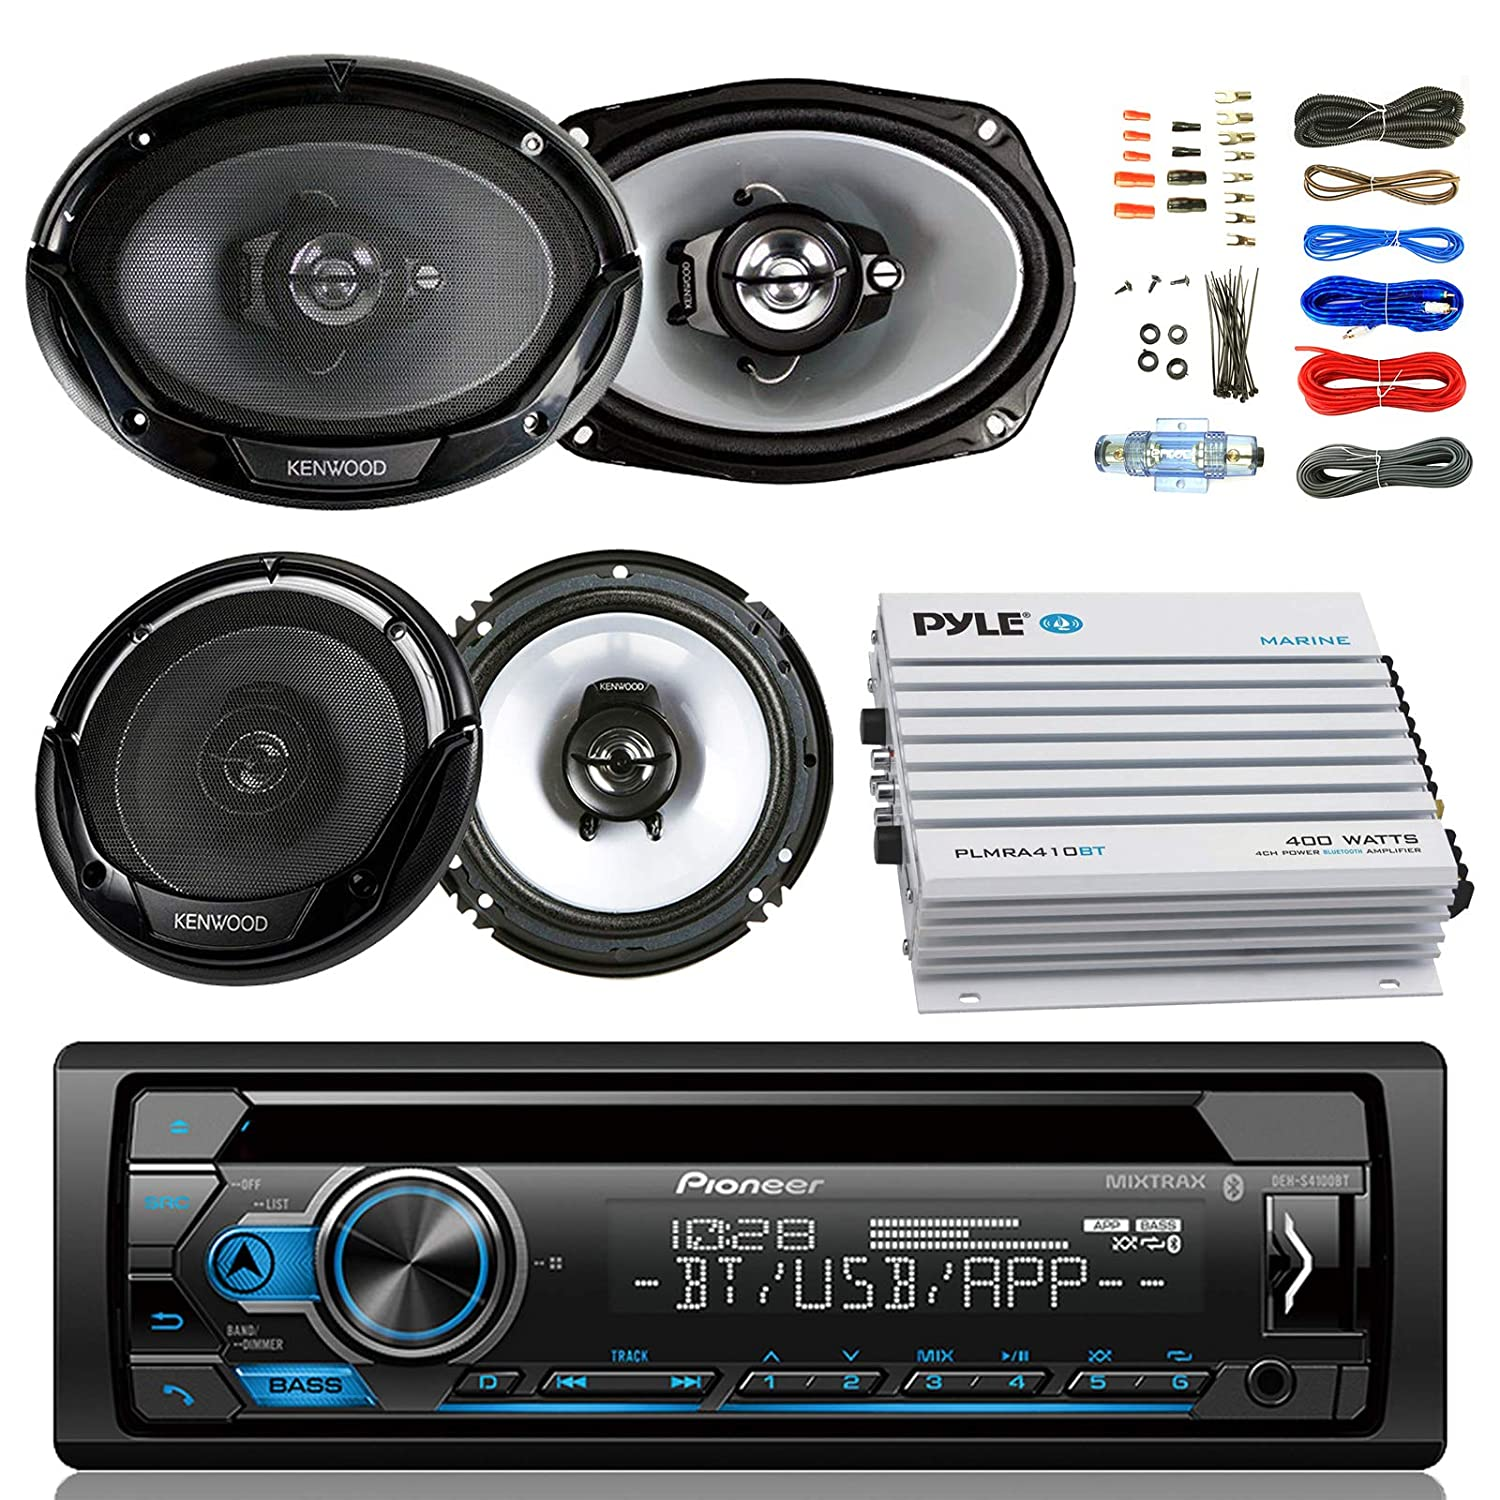 pioneer deh-s4100bt car bluetooth radio usb aux cd player receiver - bundle  combo with 2x kenwood 6 5